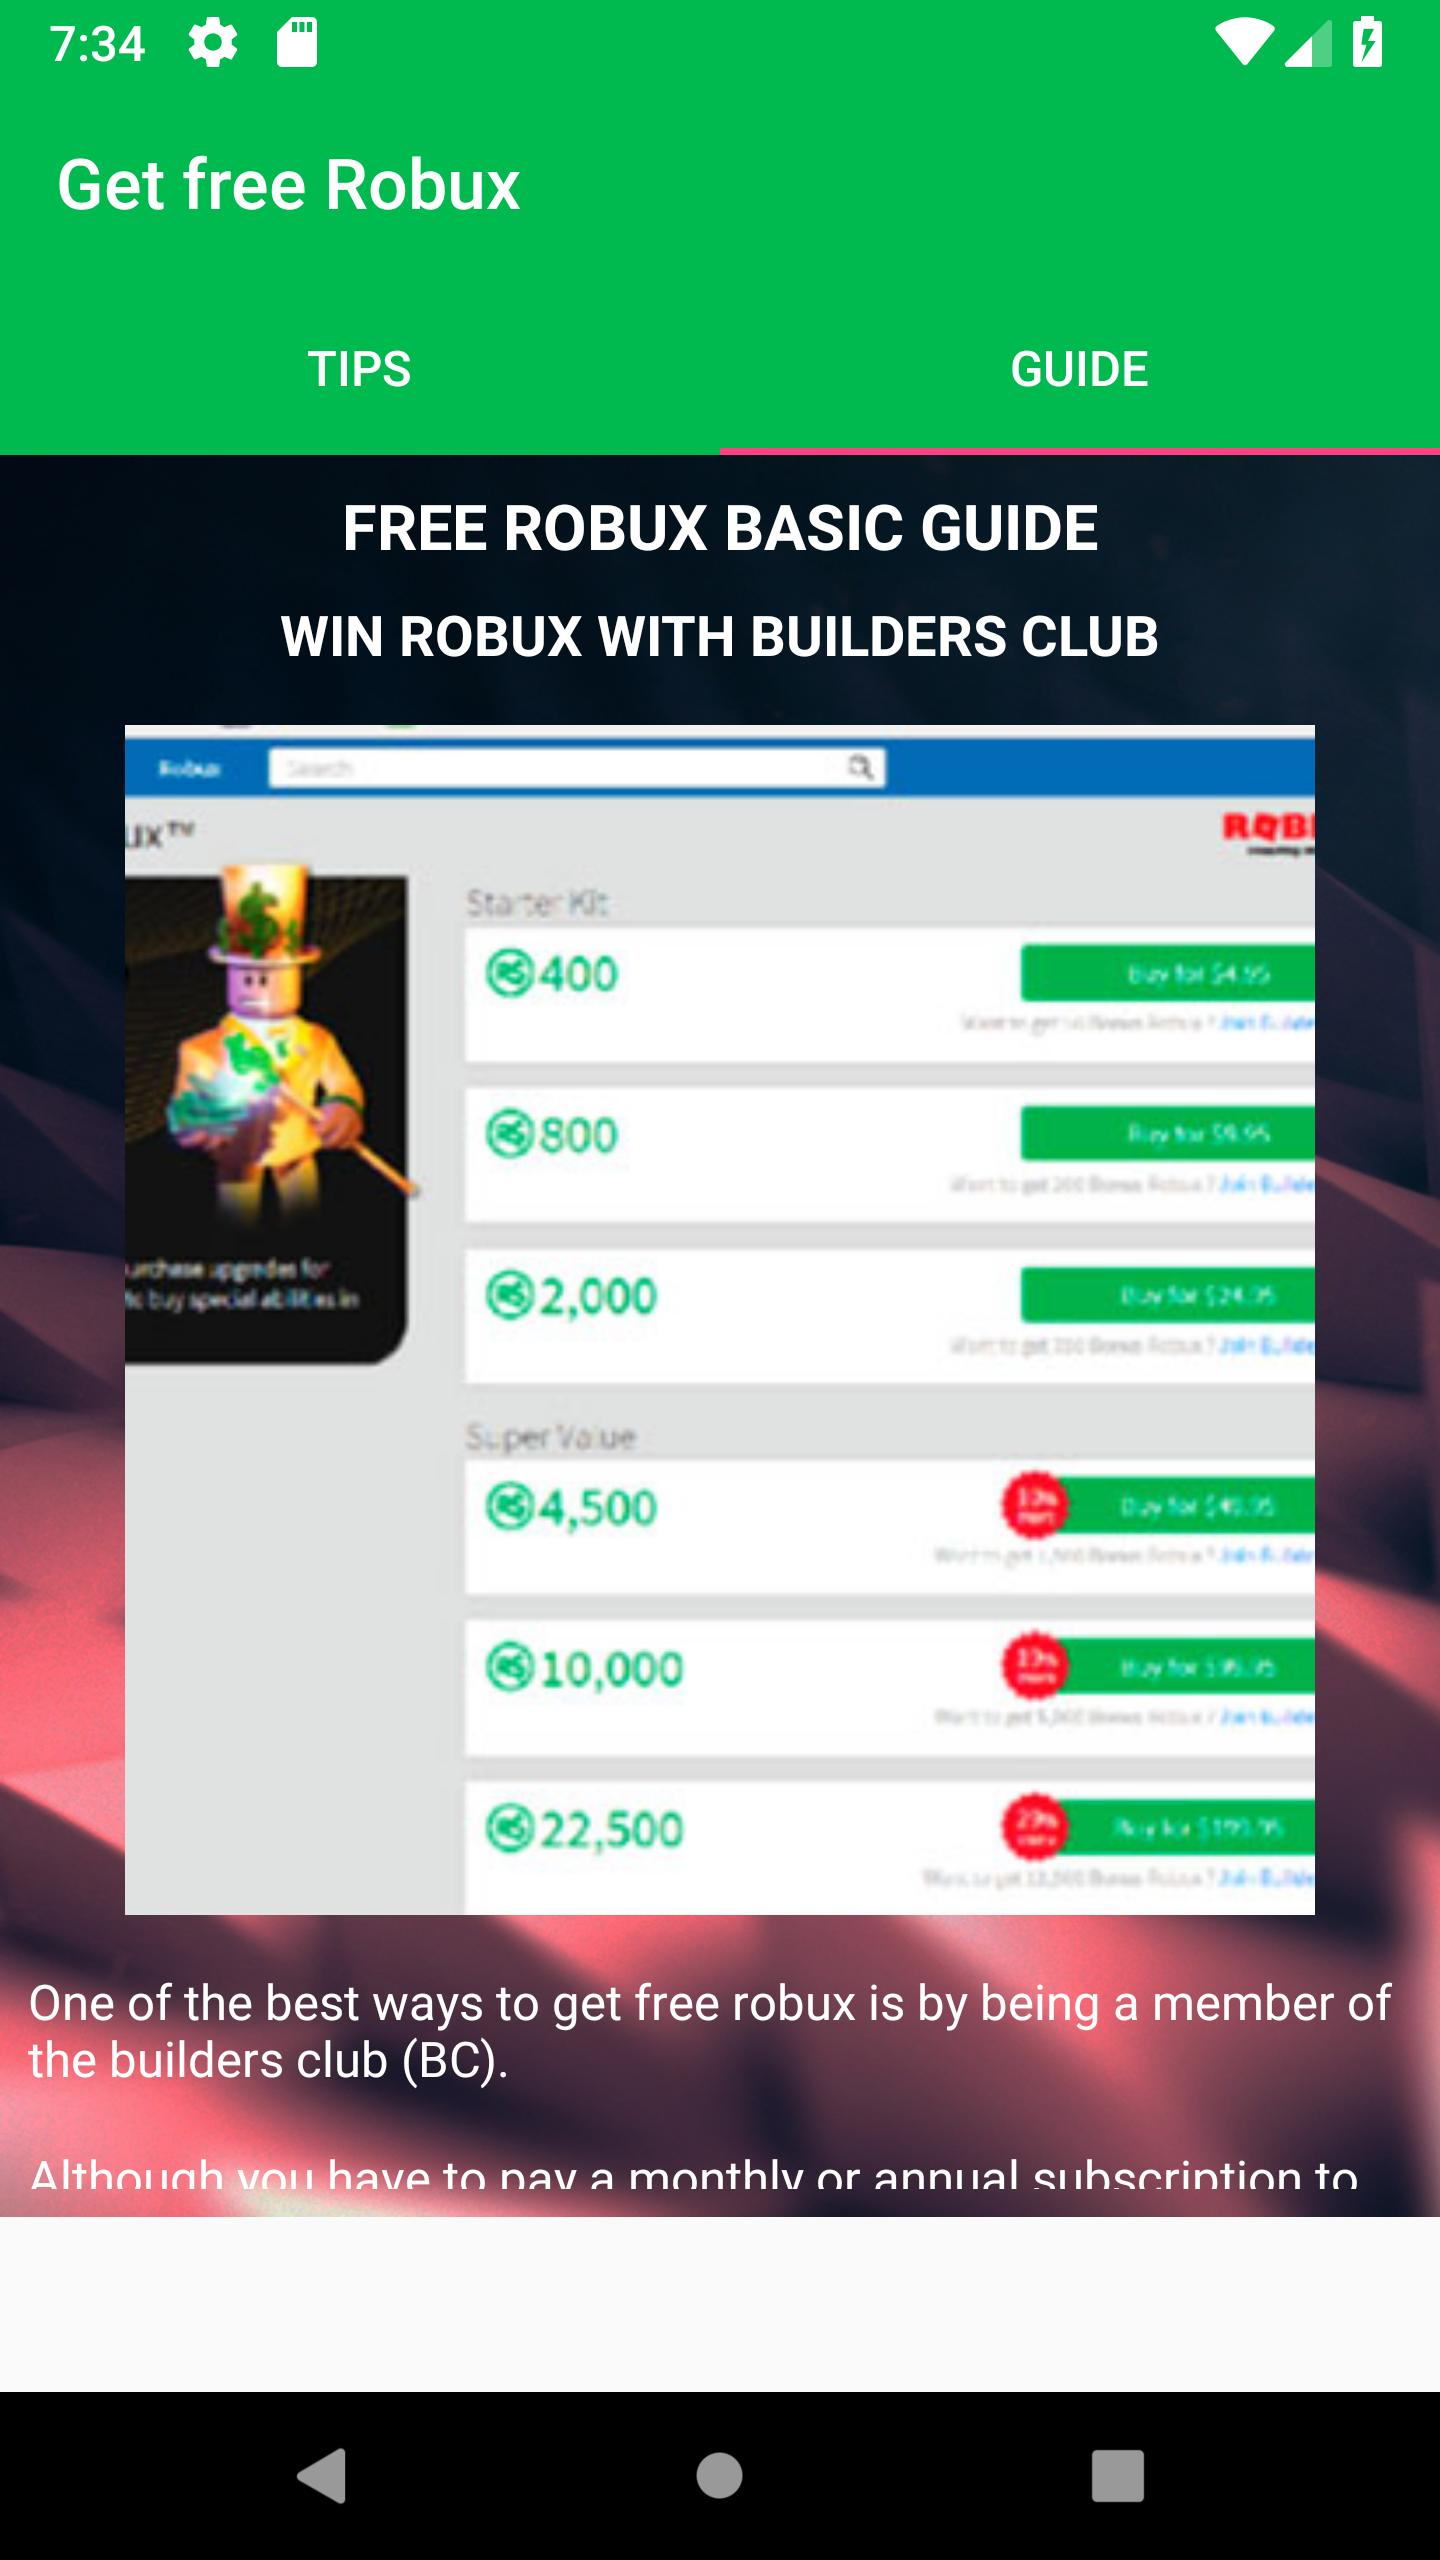 Robux Gratis 100 Real Free Robux Mobile 2019 Free Robux Now Earn Robux Free Today Tips 2018 For Android Apk Download